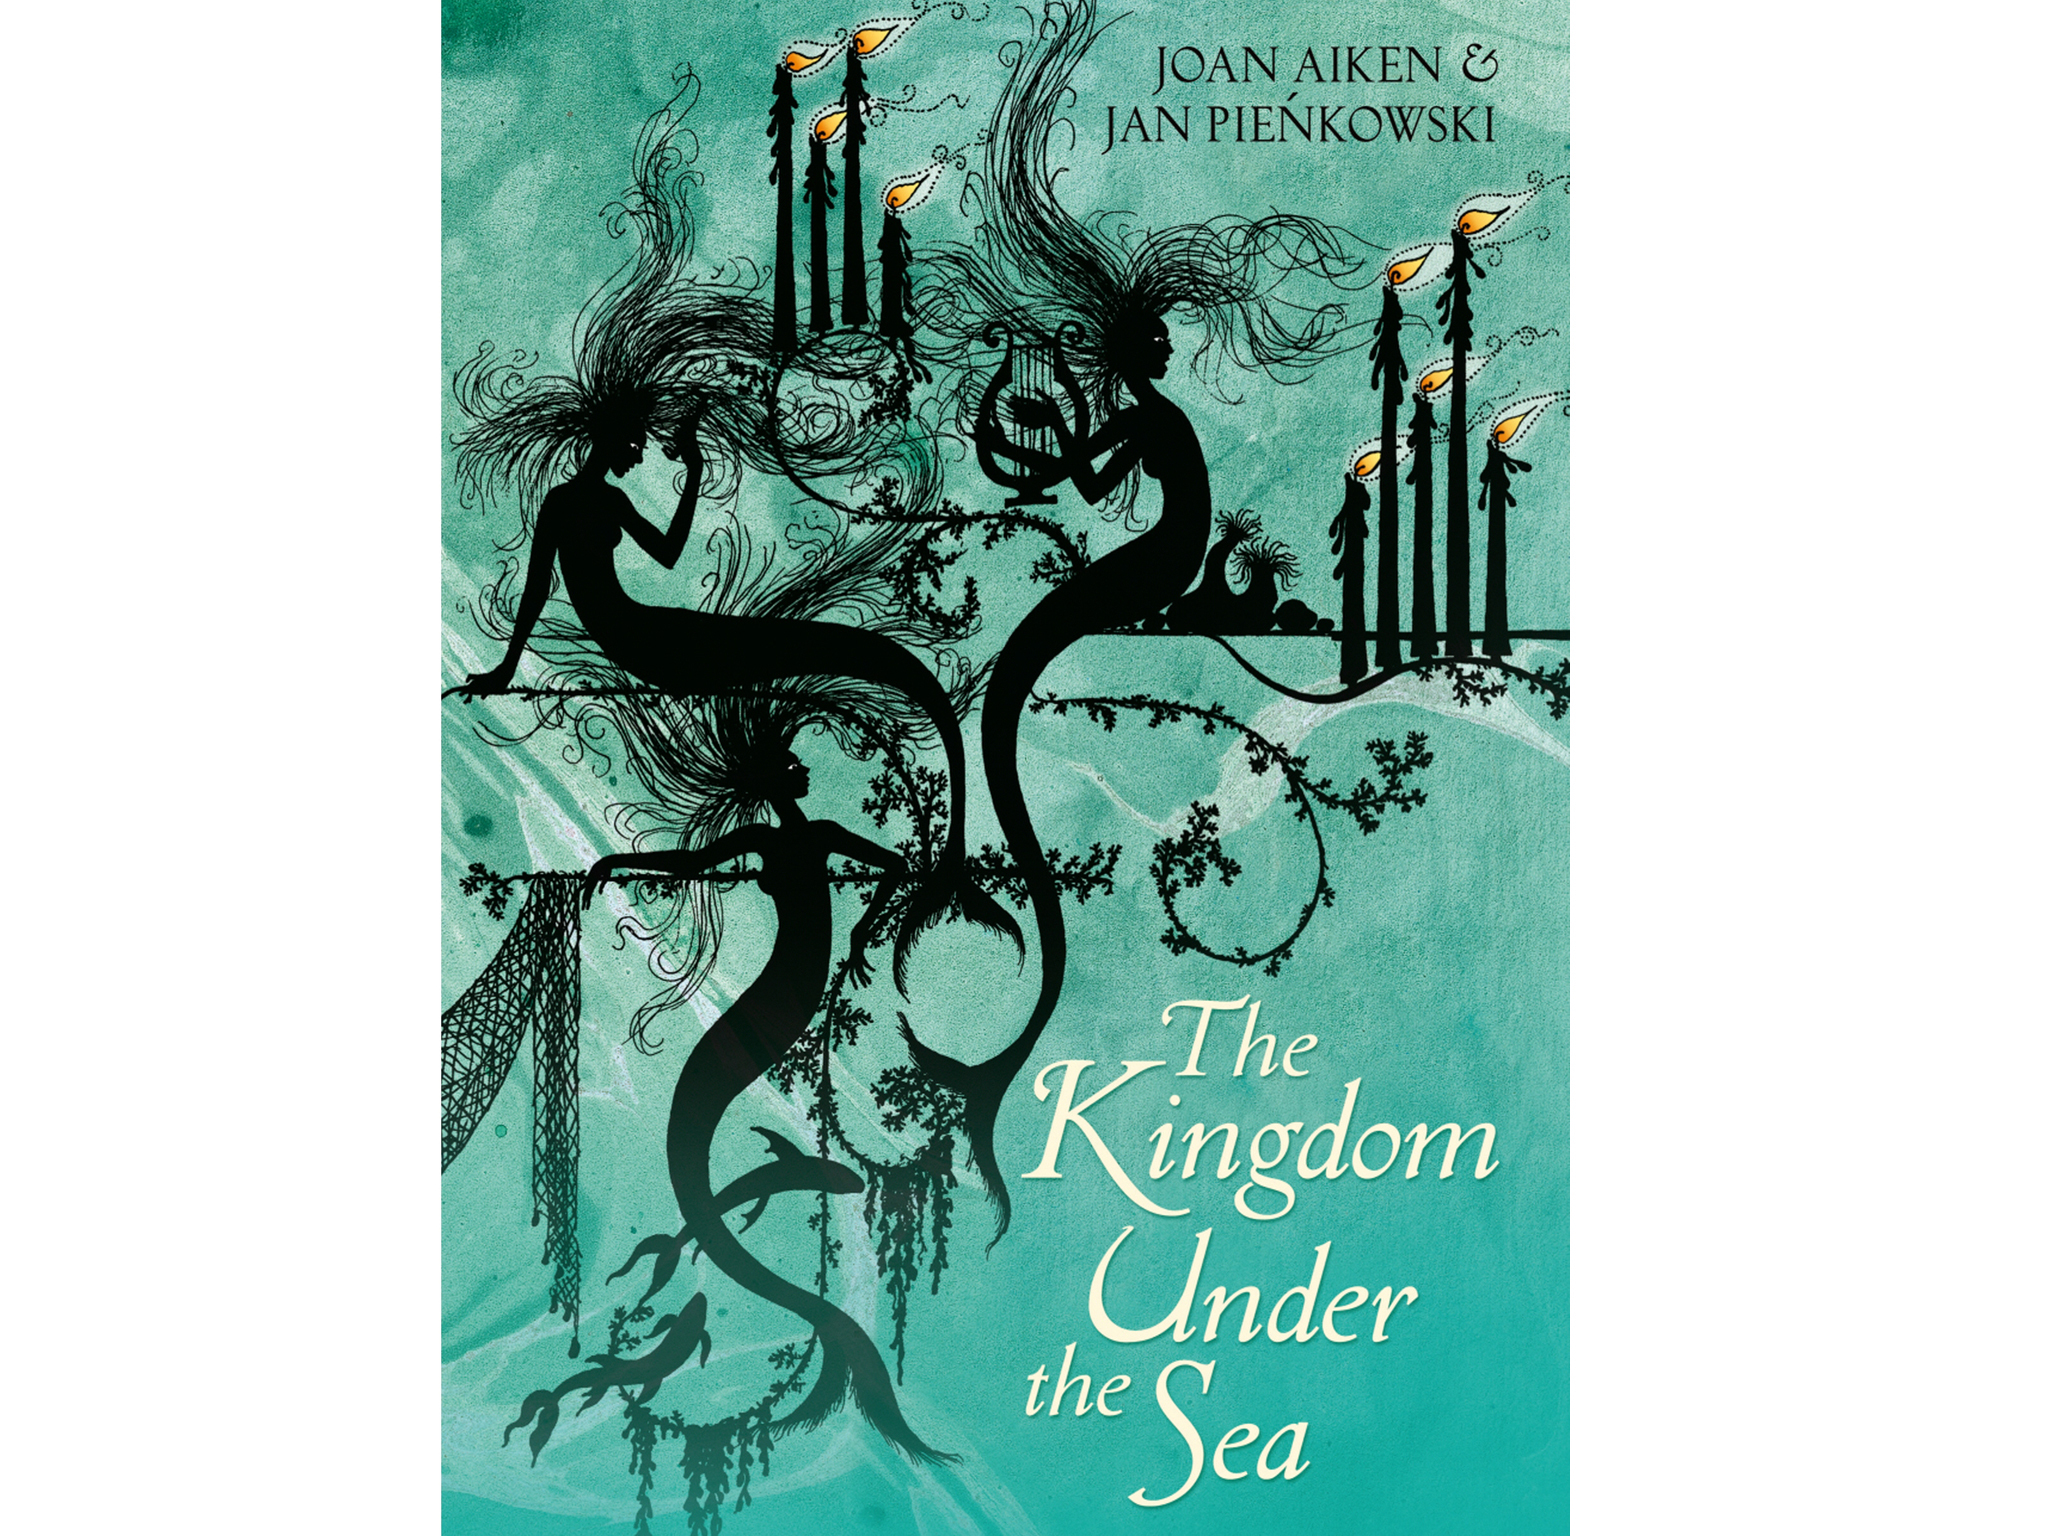 100 best children's books: The Kingdom Under the Sea